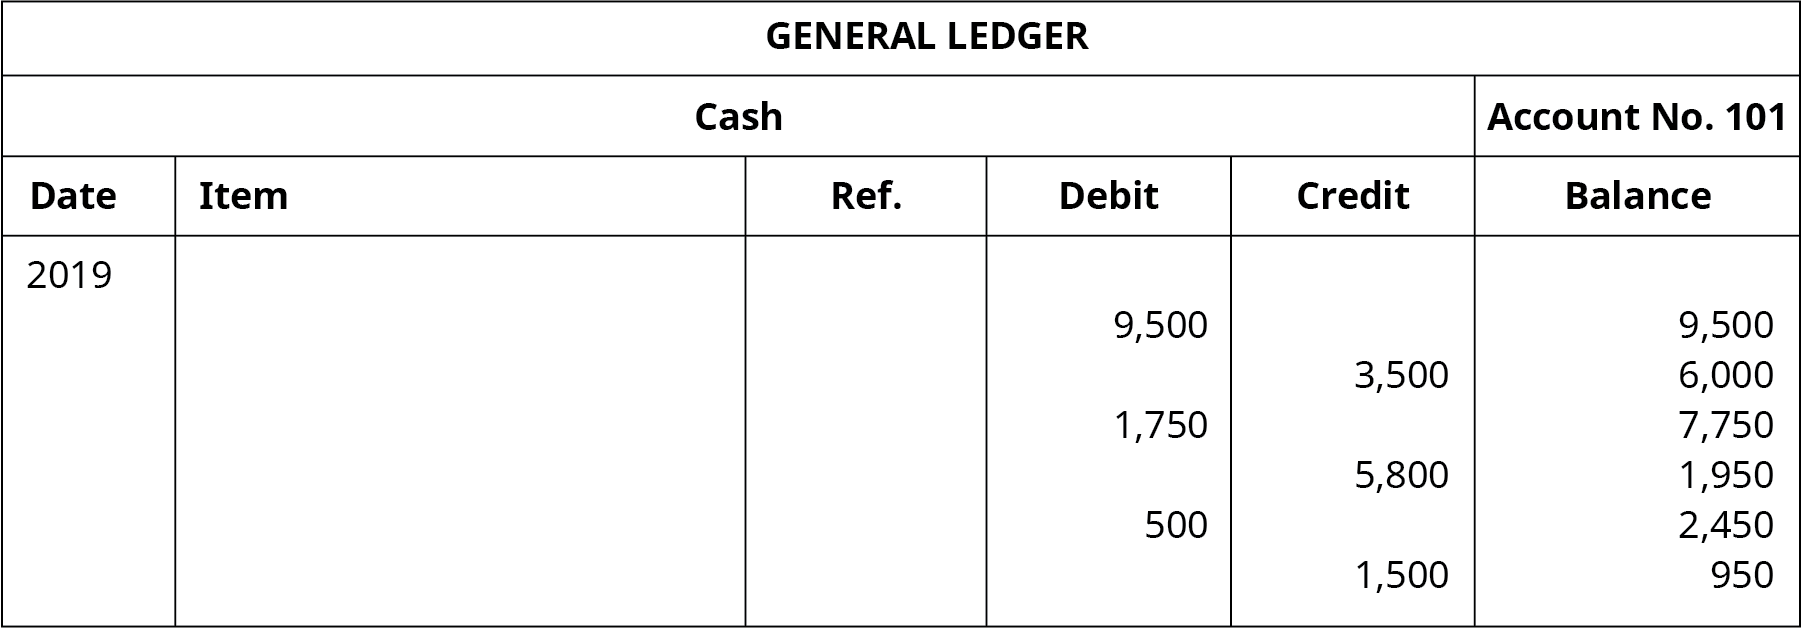 "A General Ledger titled ""Cash Account No. 101"" with six columns. Date: 2019. Six columns labeled left to right: Date, Item, Reference, Debit, Credit, Balance. Debit: 9,500; Balance: 9,500. Credit: 3,500; Balance: 6,000. Debit: 1,750; Balance: 7,750. Credit: 5,800; Balance: 1,950. Debit: 500; Balance: 2,450. Credit: 1,500; Balance: 950. Credit: 1,200; Balance: 250."